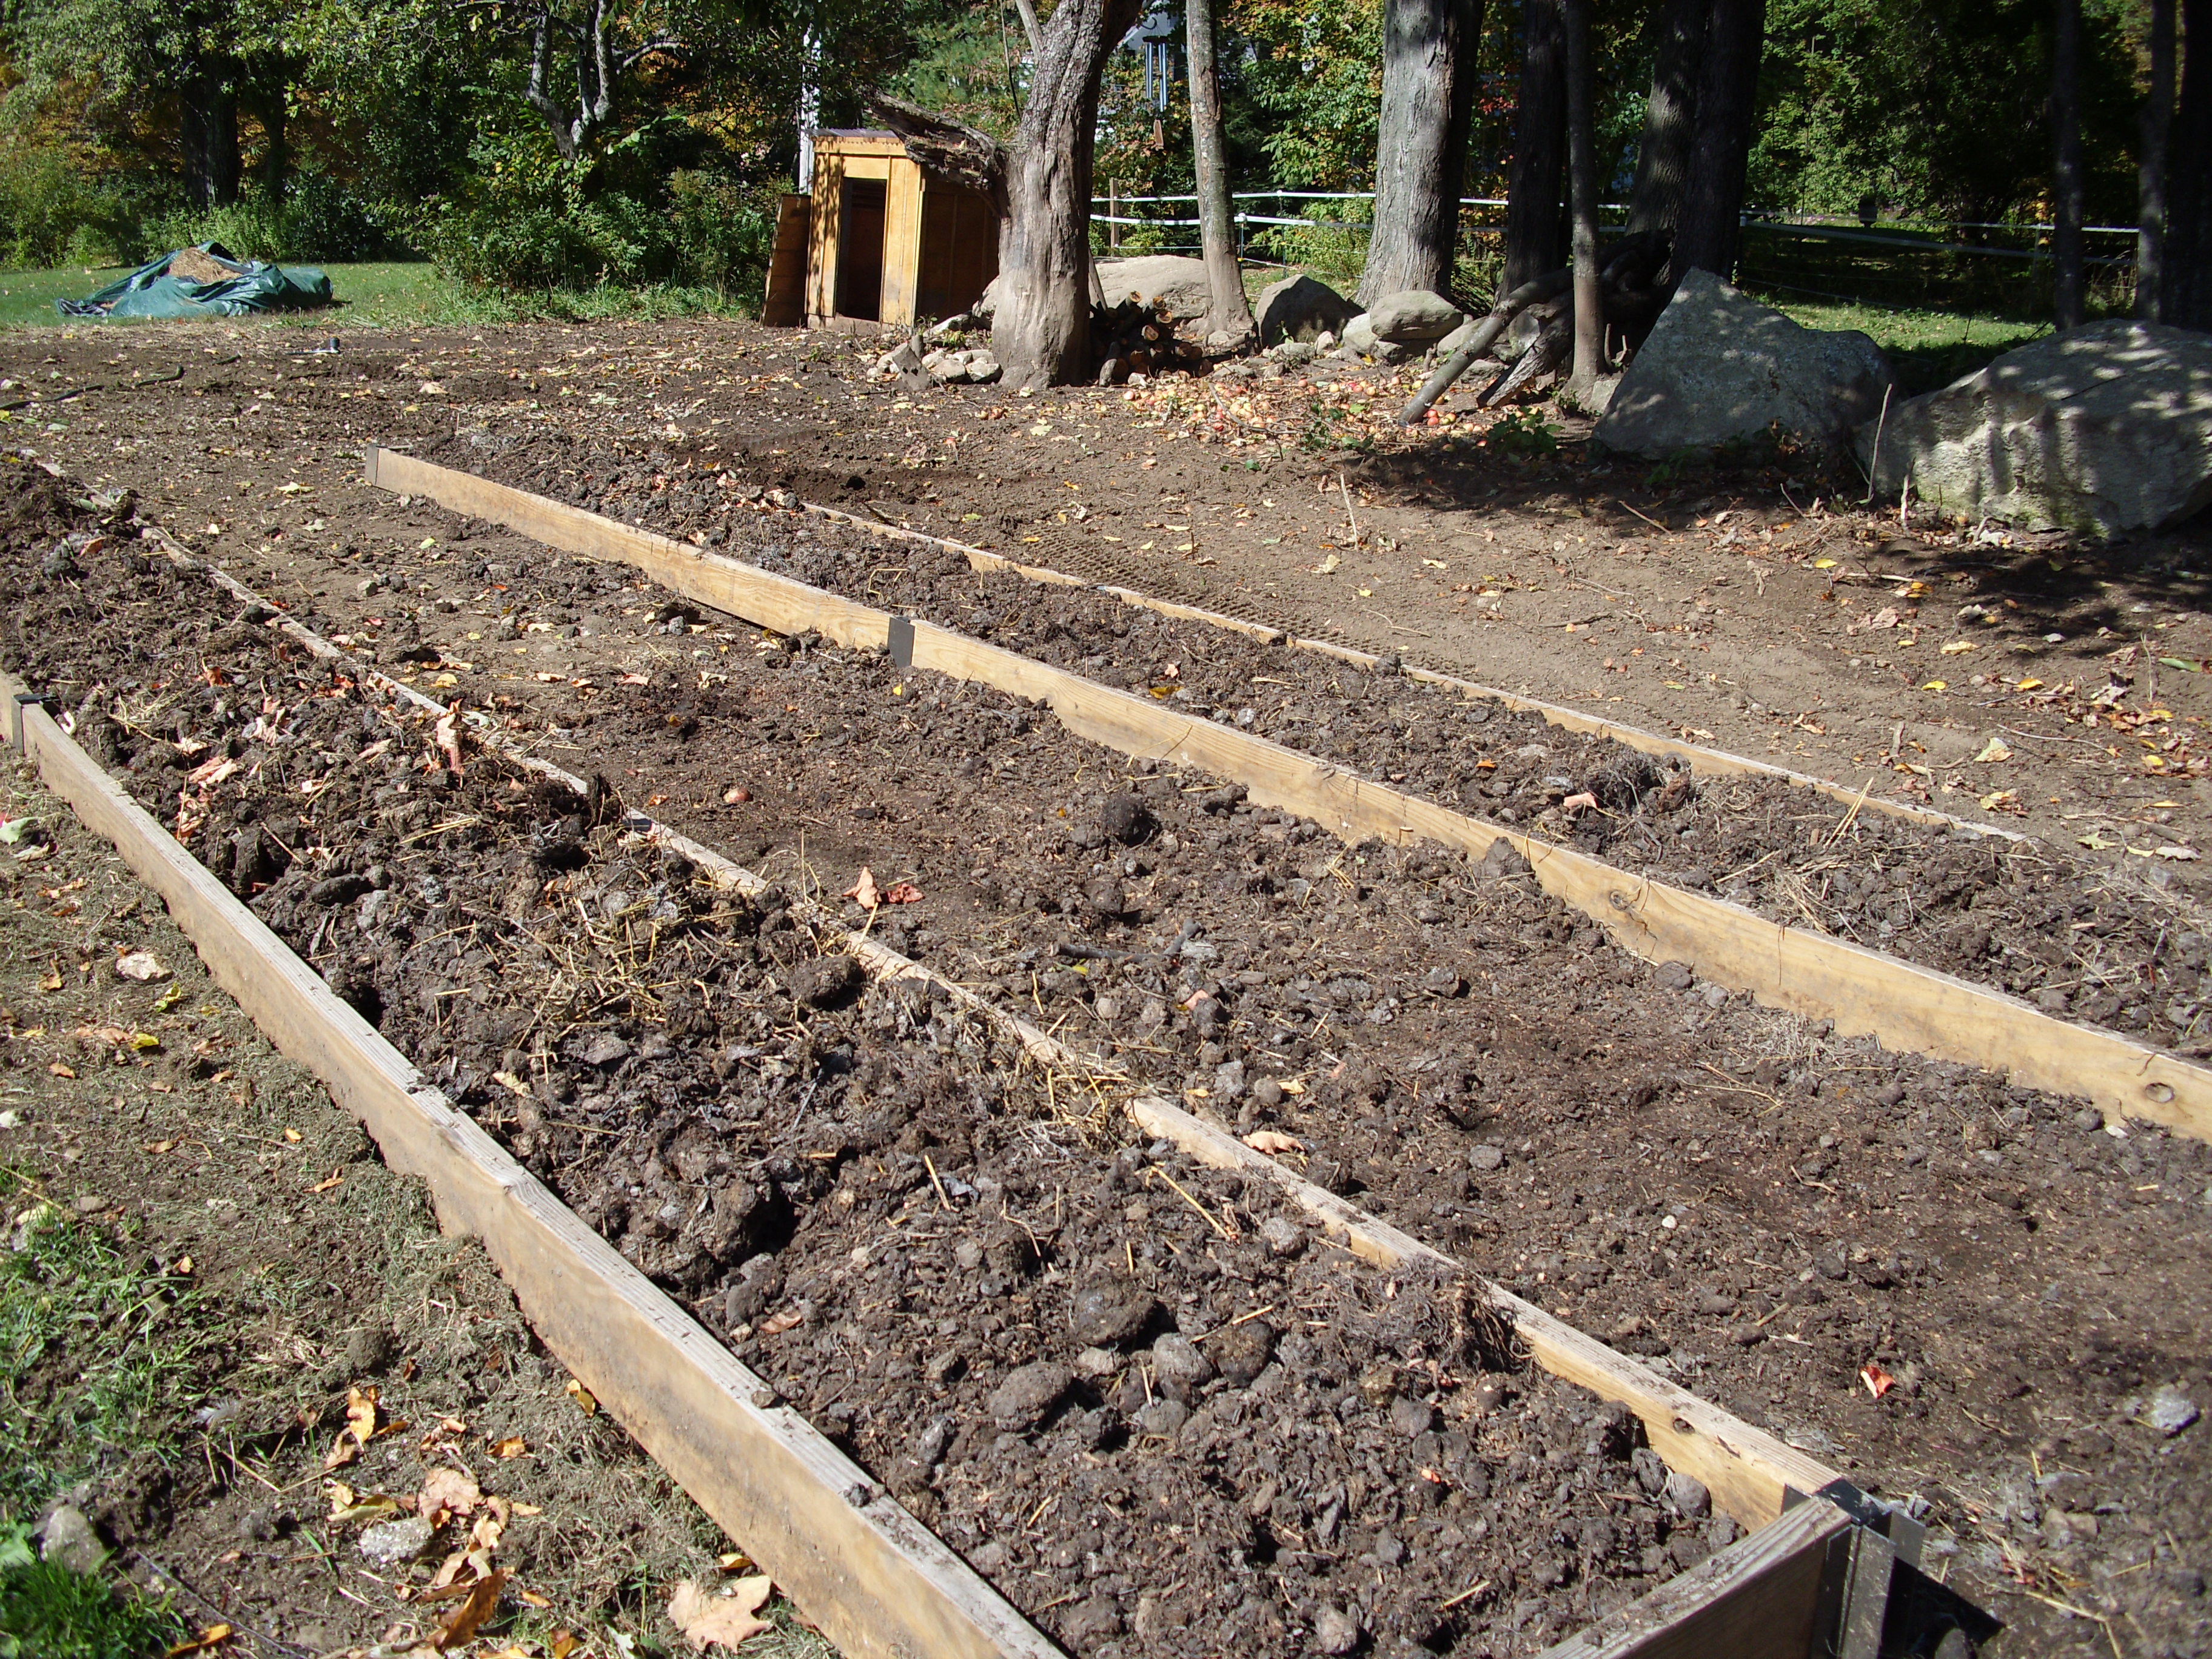 This is the old pig pen, nicely turned over soil.  Seeded and new beds built.  I fill them with nearly finished compost.  I'll let them get soaked this week then cover them with  mulch hay.  Ready for early crops next spring.